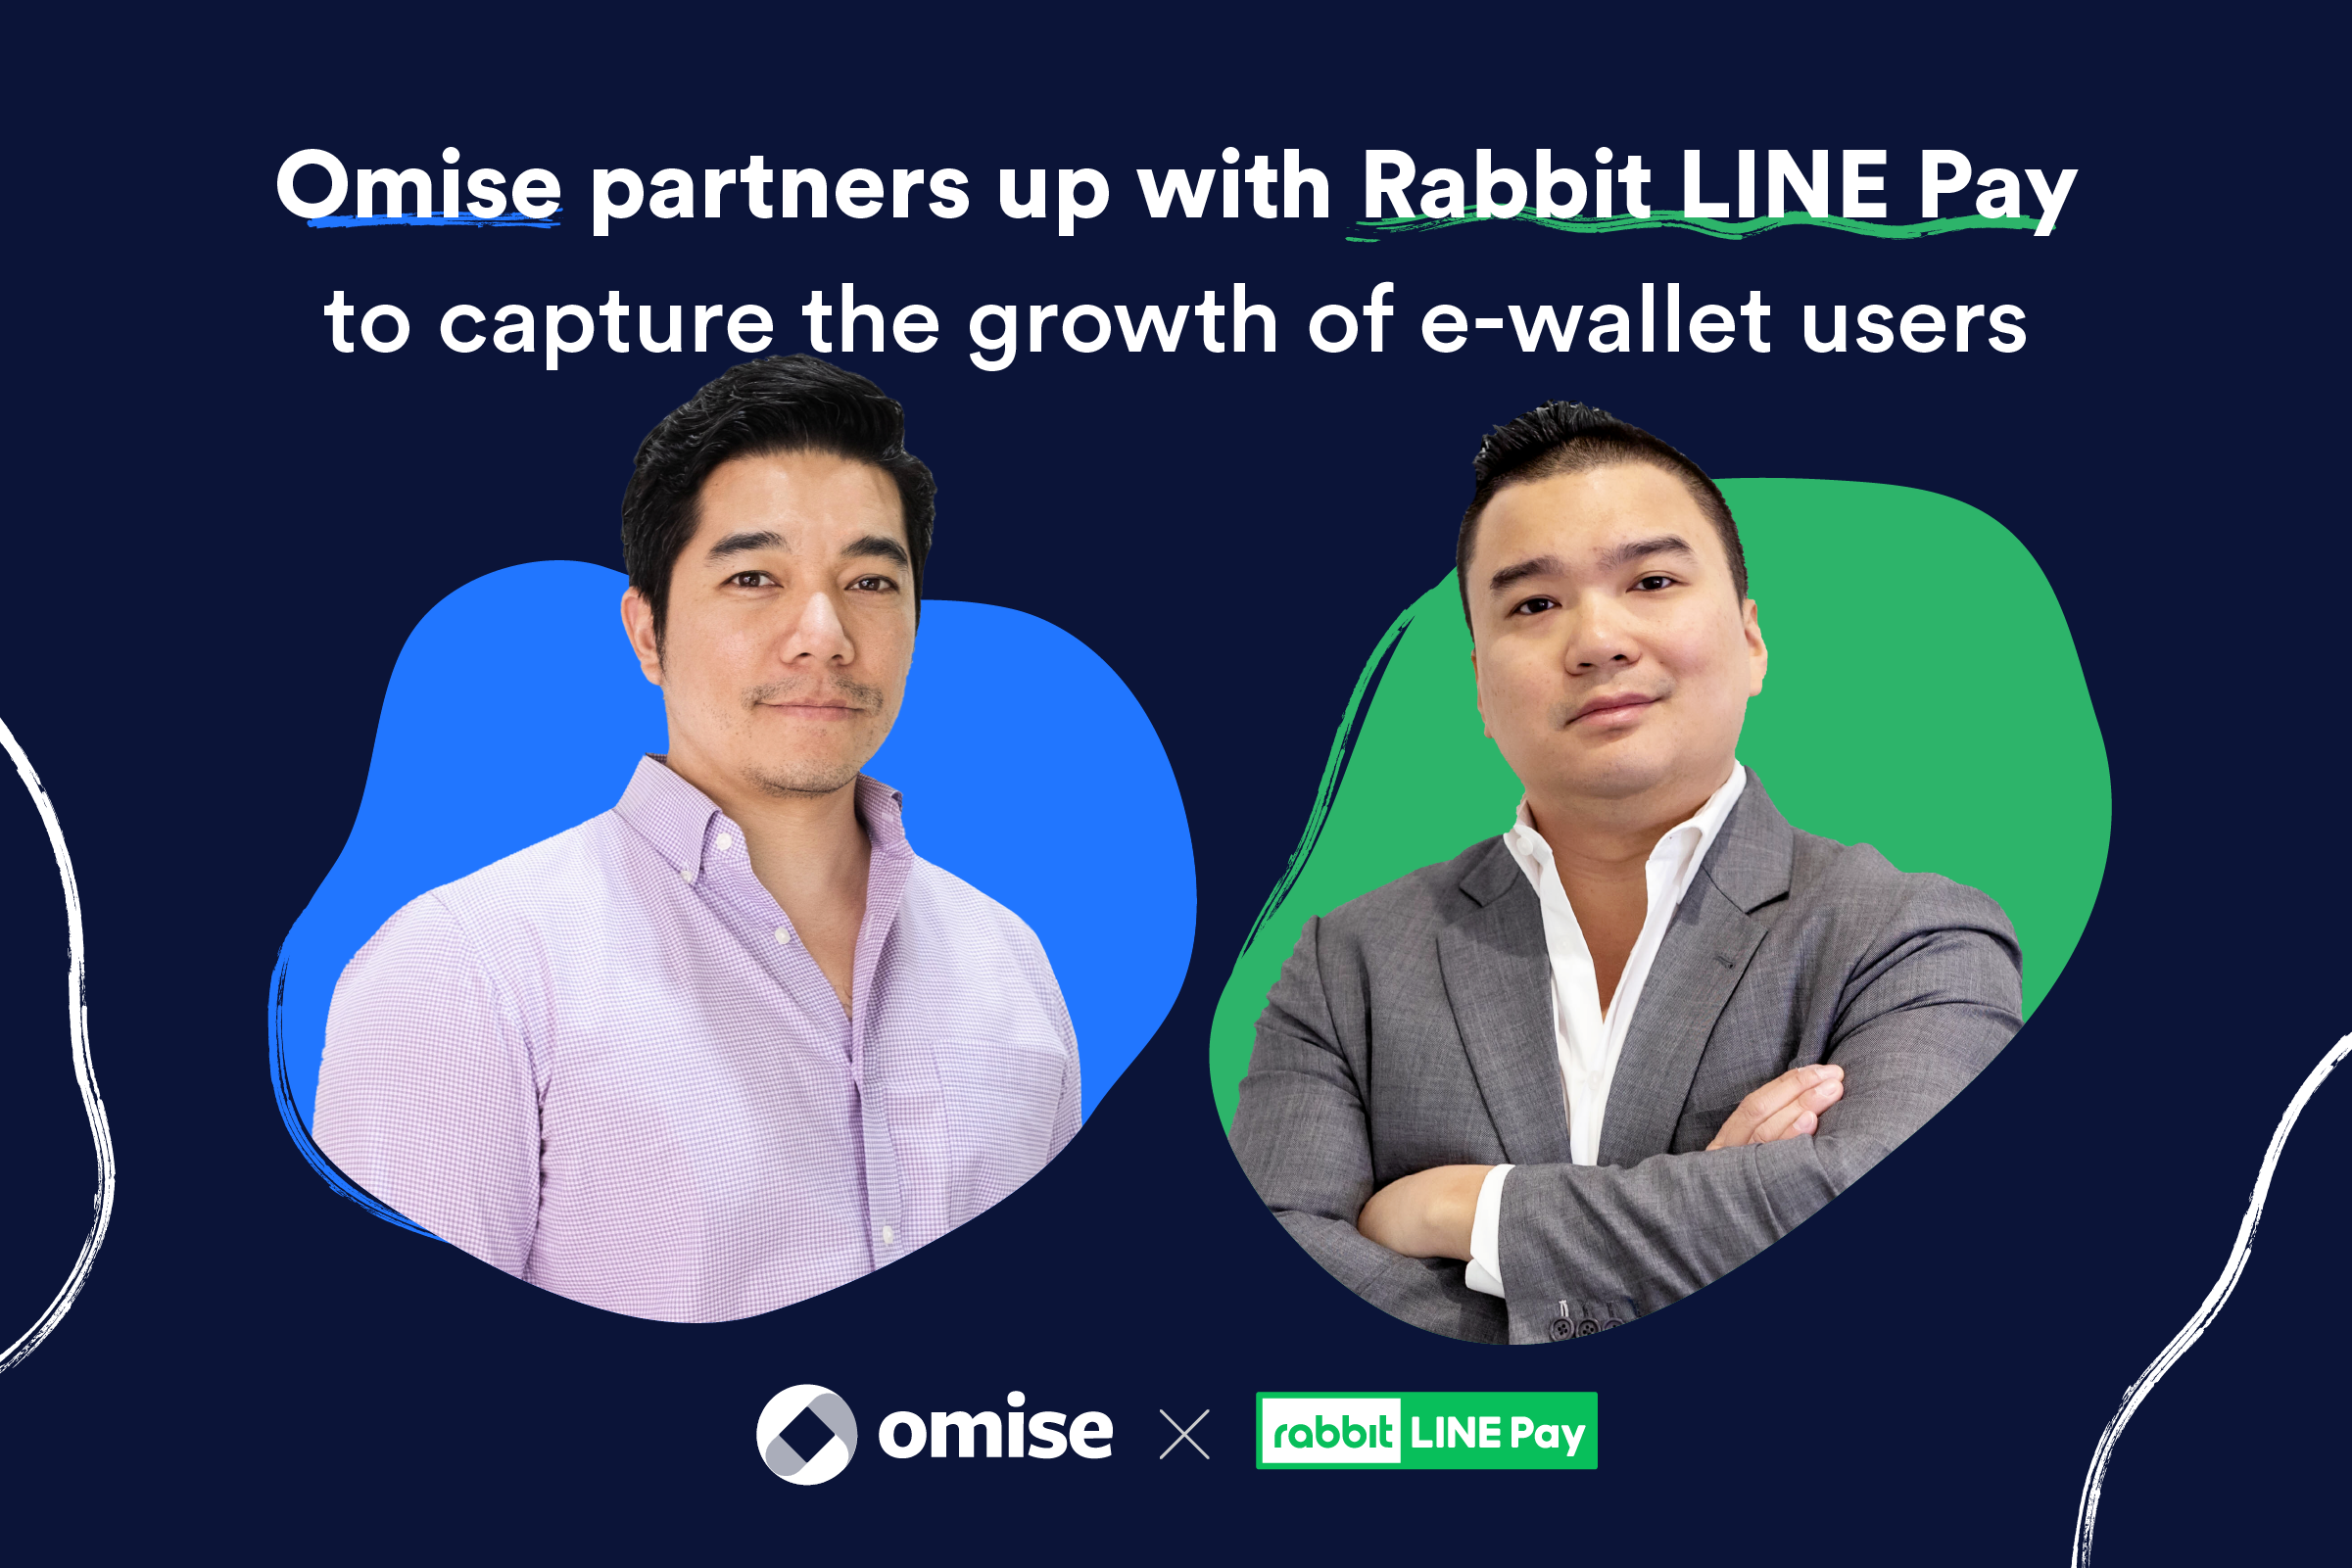 Omise partners up with Rabbit LINE Pay to capture the growth of e-wallet users